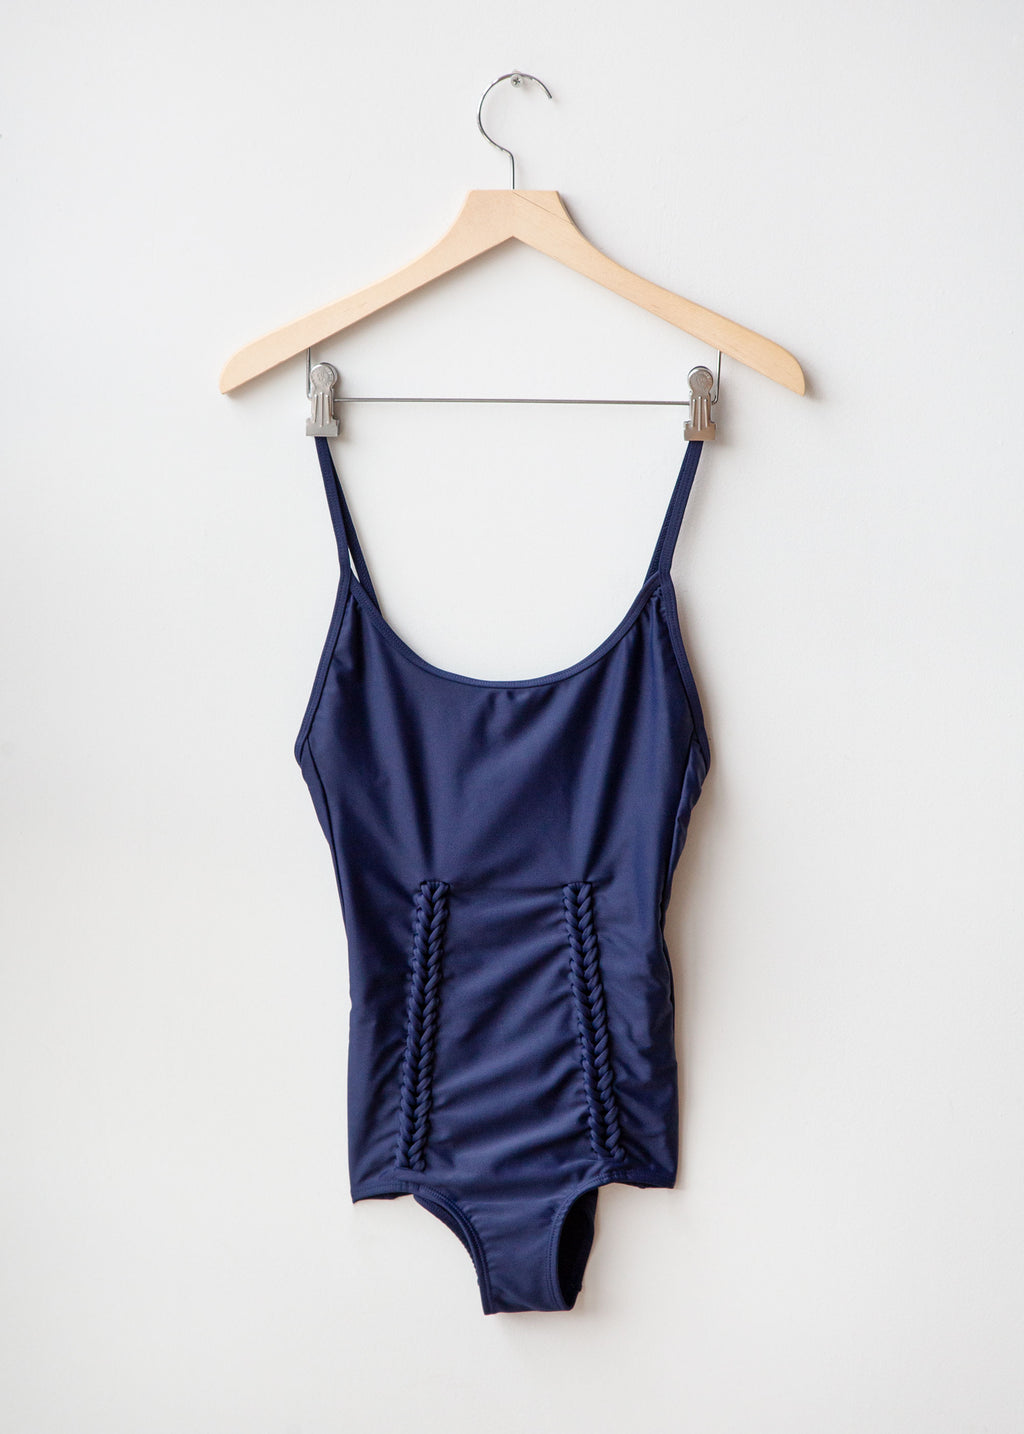 Erin One-Piece in Navy